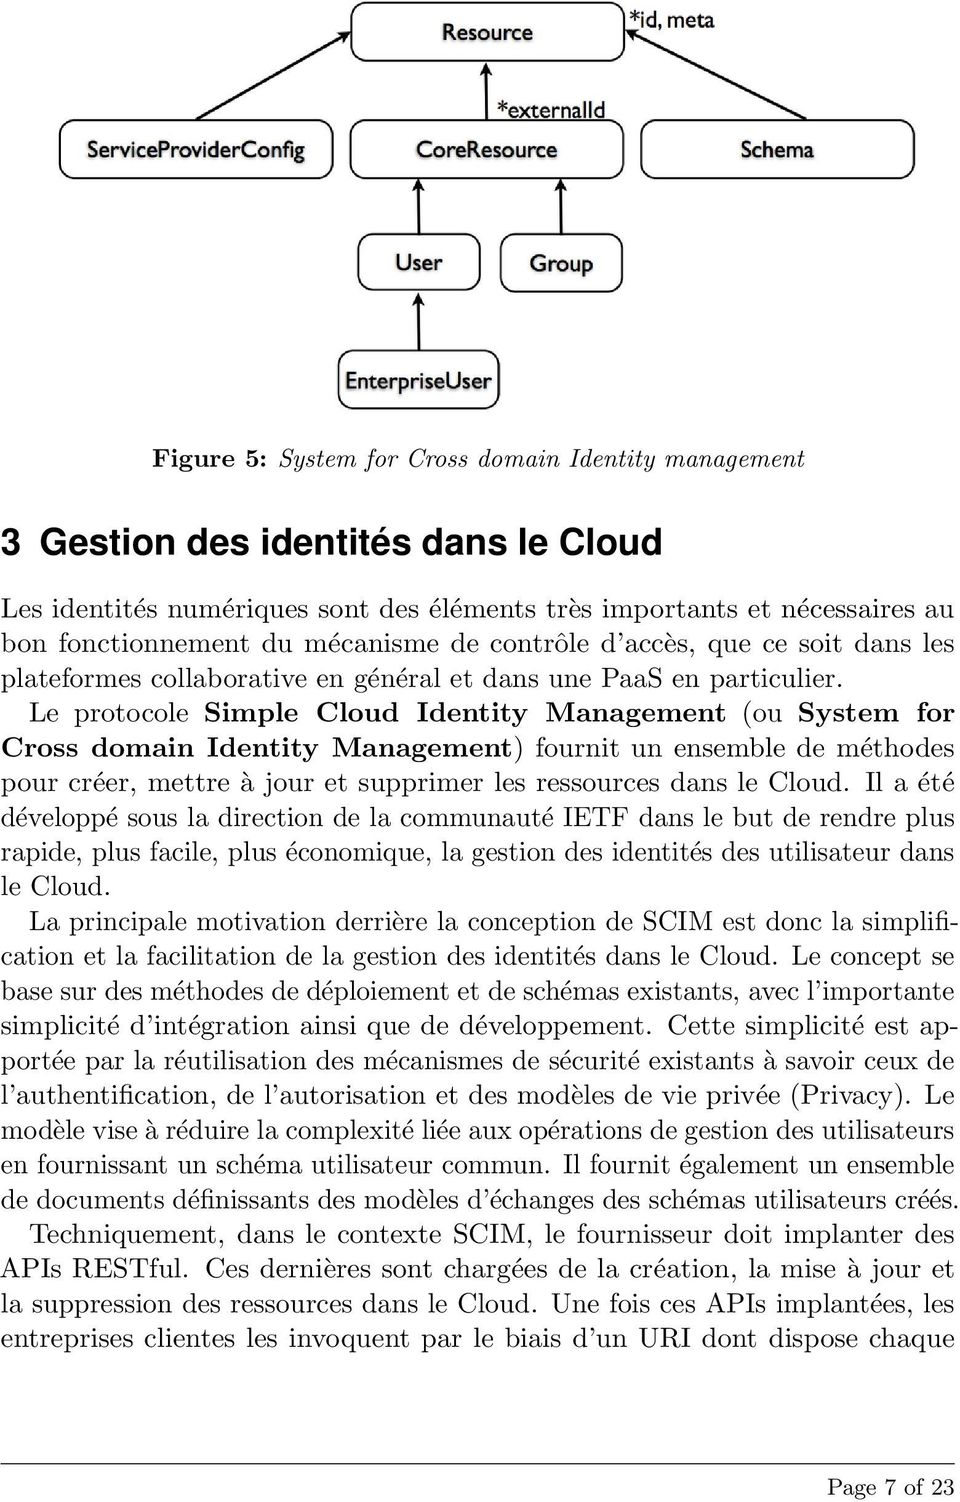 Le protocole Simple Cloud Identity Management (ou System for Cross domain Identity Management) fournit un ensemble de méthodes pour créer, mettre à jour et supprimer les ressources dans le Cloud.